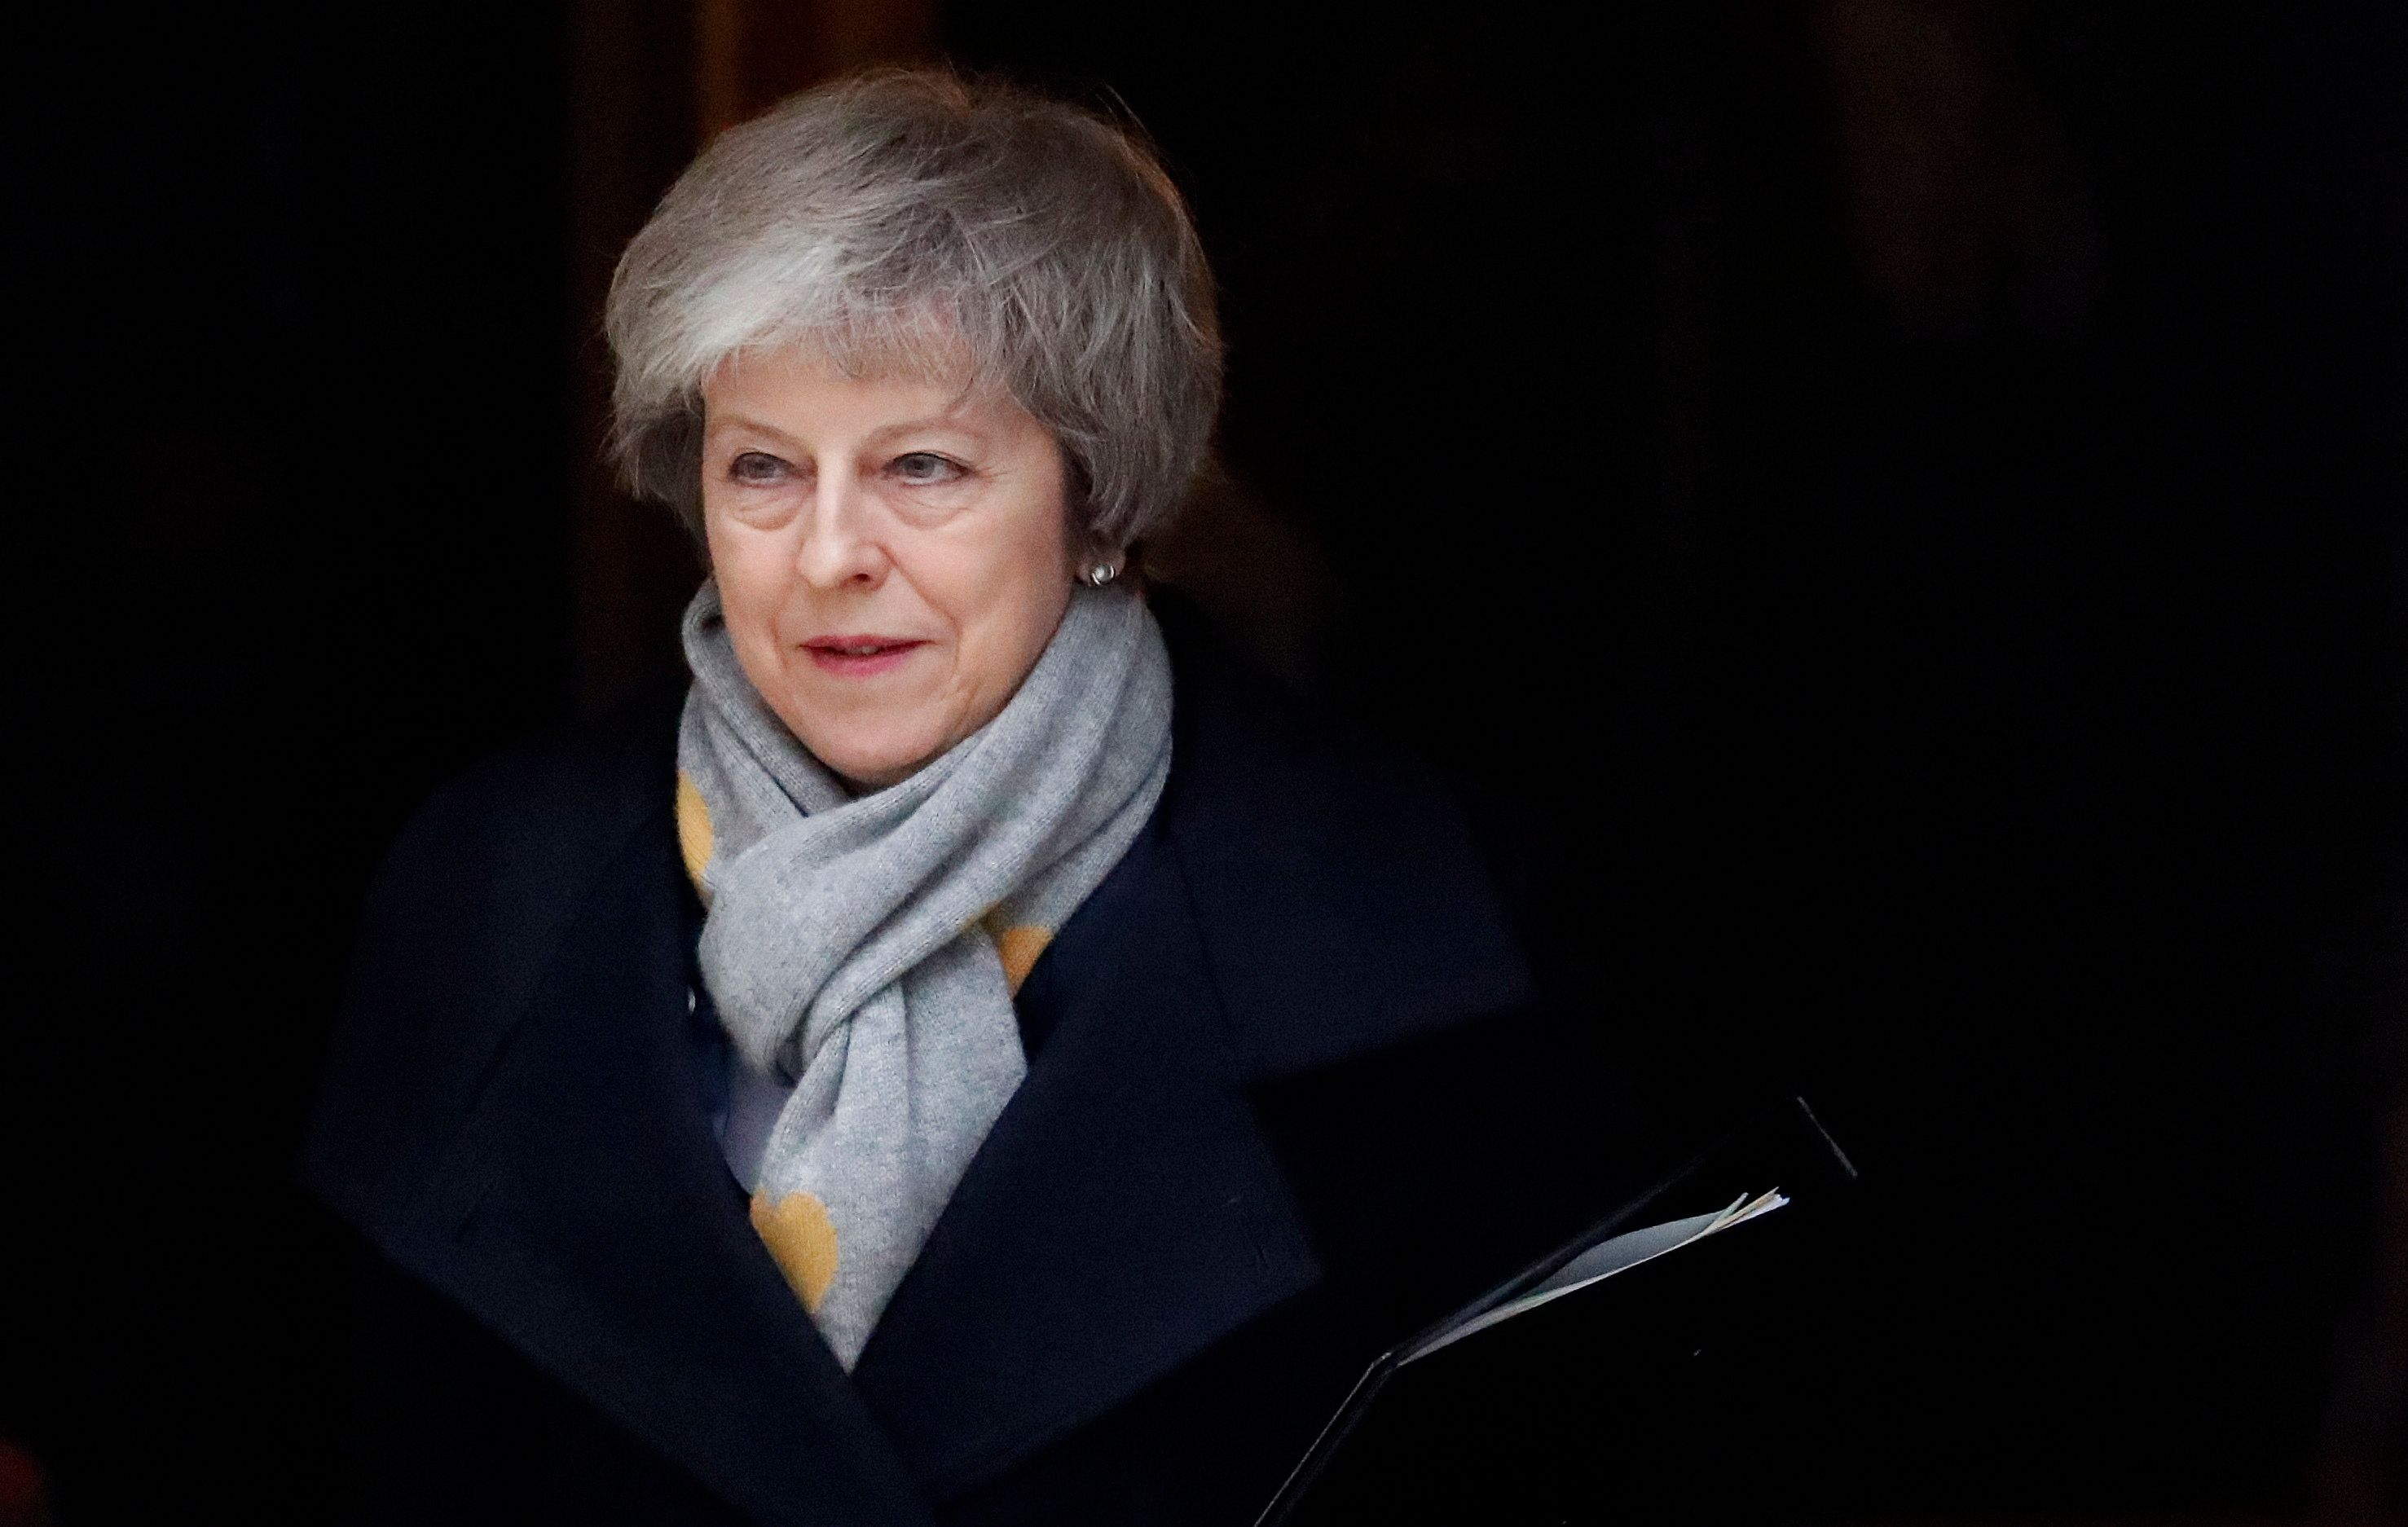 Britain's Prime Minister Theresa May leaves a cabinet meeting at Downing Street in London, Tuesday, Jan. 15, 2019. May is struggling to win support for her Brexit deal in Parliament. Lawmakers are due to vote on the agreement Tuesday, and all signs suggest they will reject it, adding uncertainty to Brexit less than three months before Britain is due to leave the EU on March 29. (AP Photo/Frank Augstein)